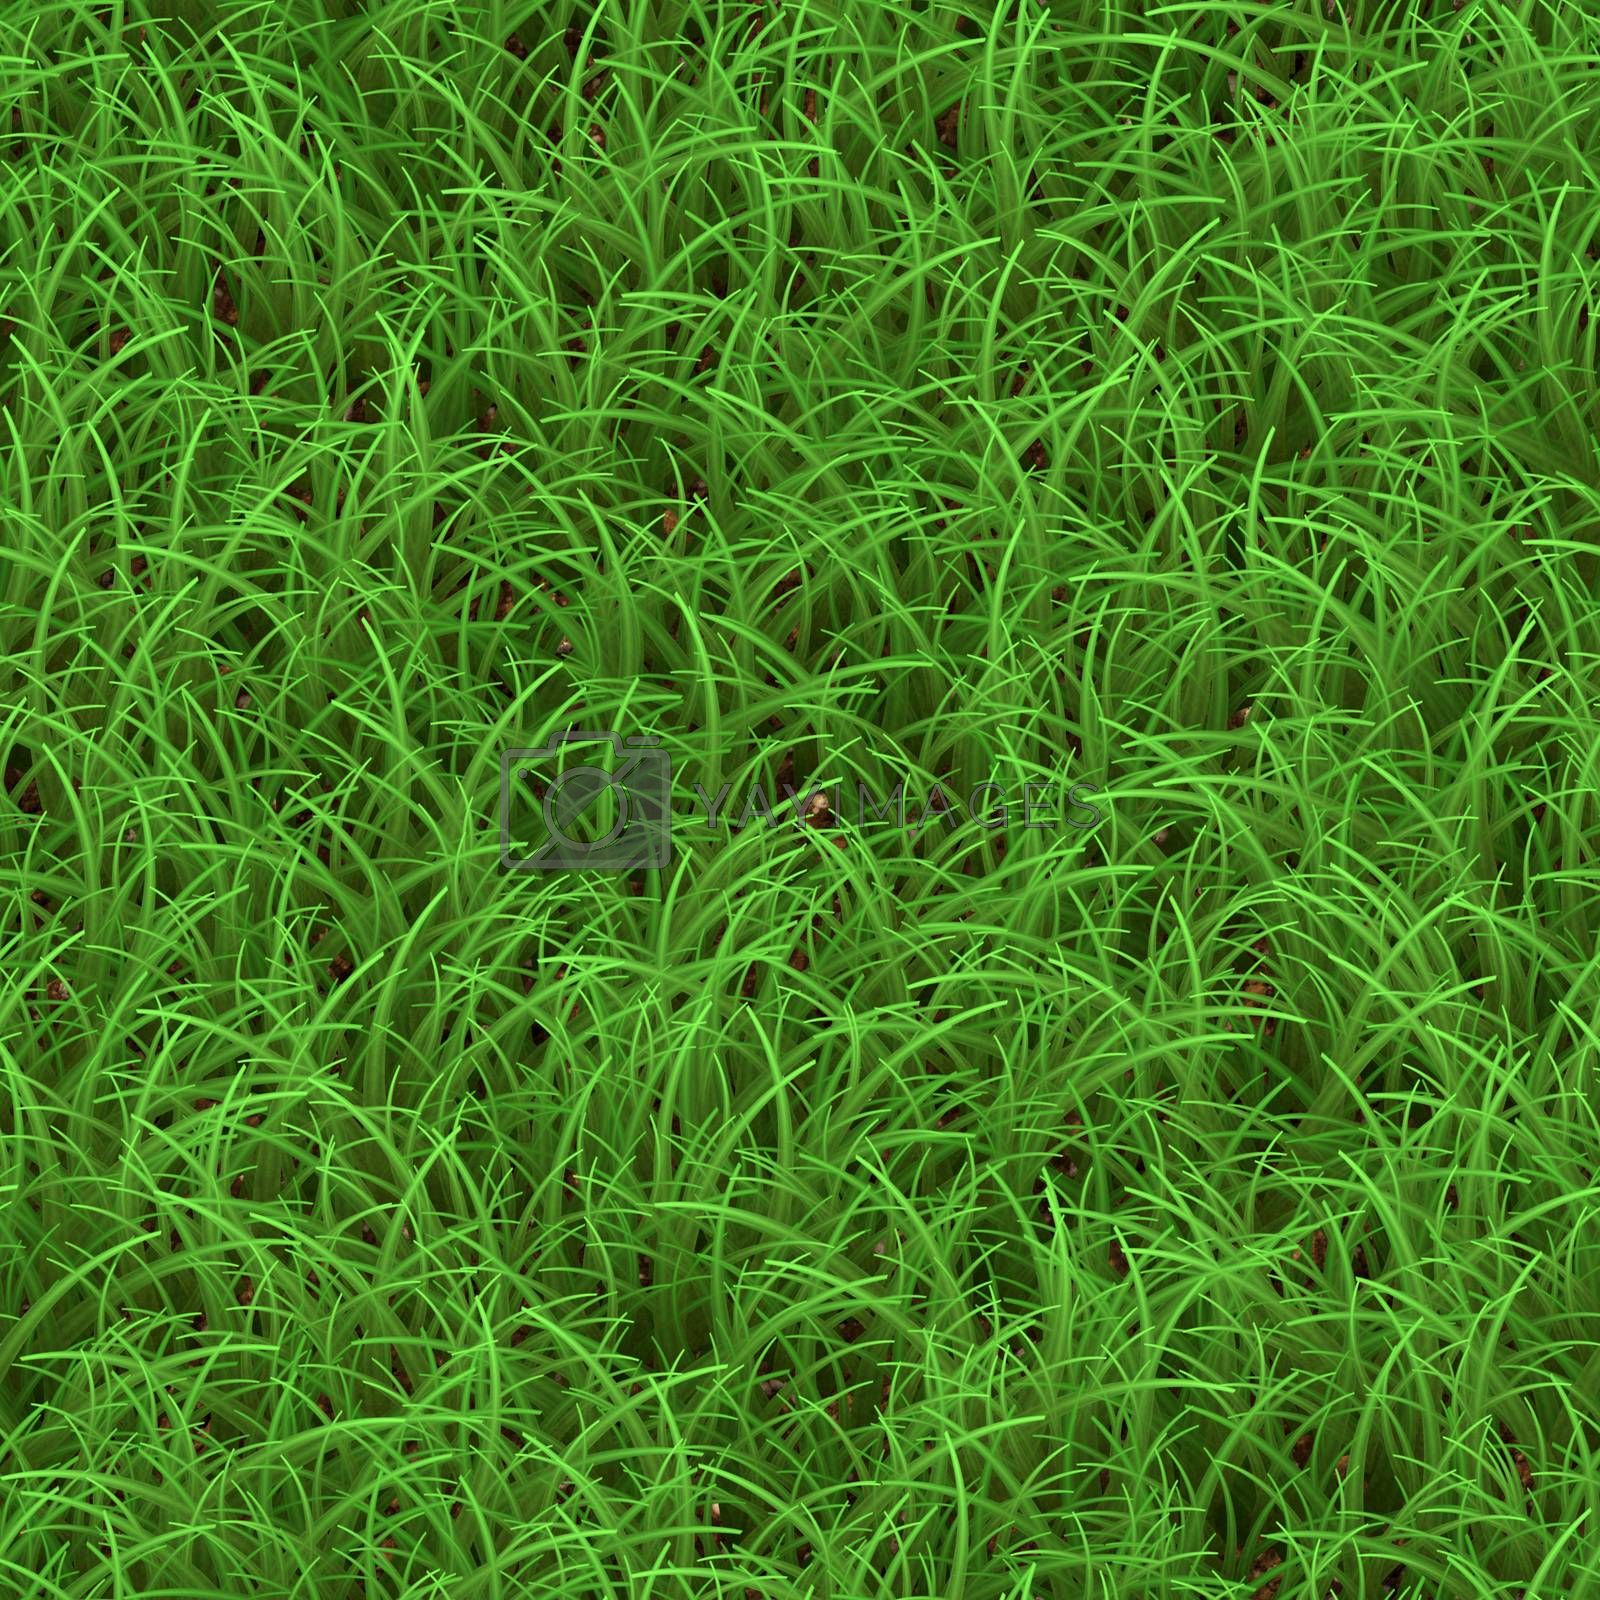 Green grass texture that tiles seamlessly as a pattern.